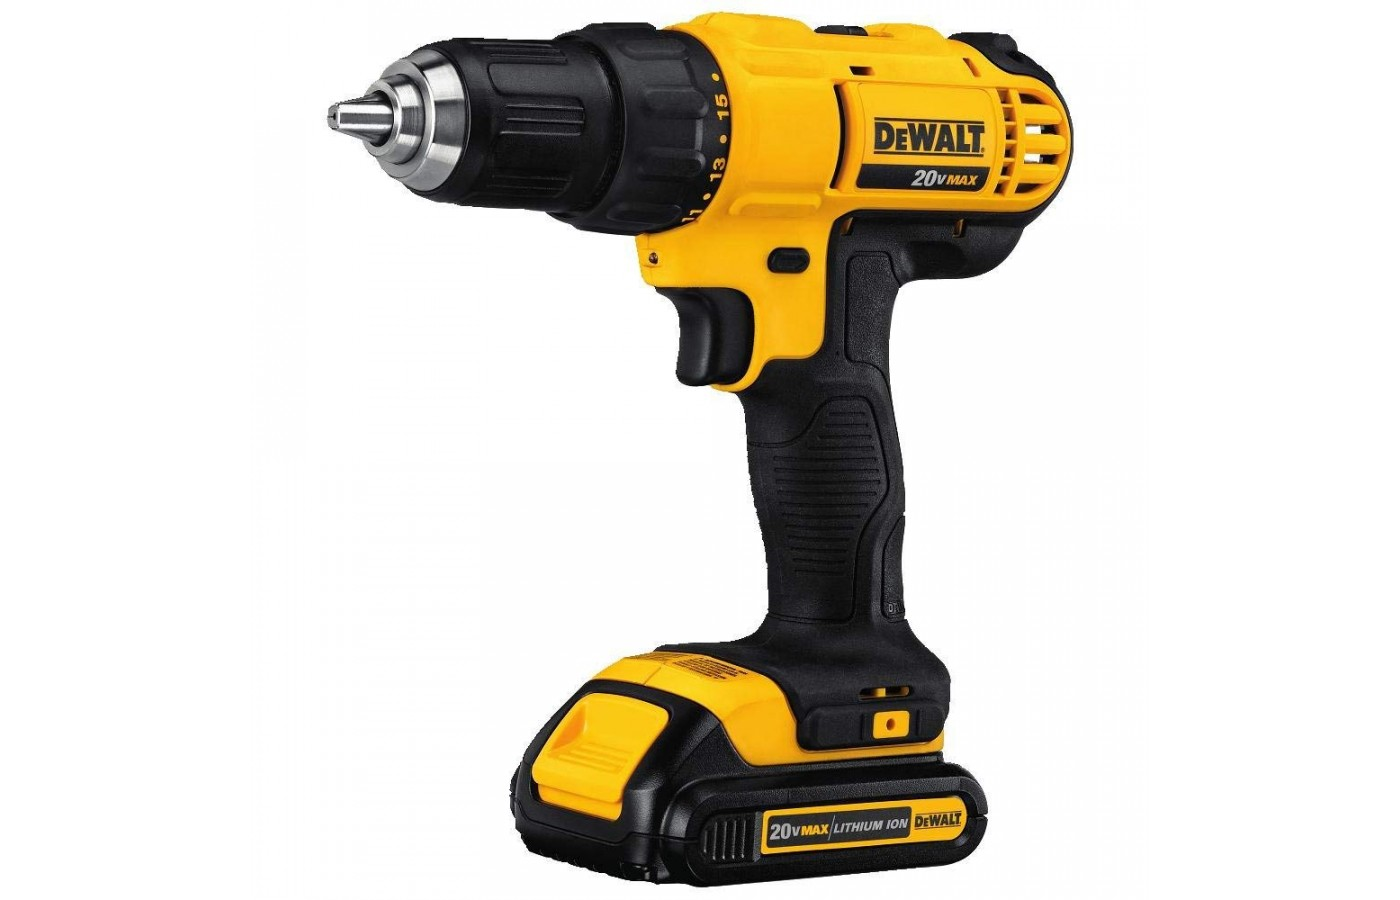 The drill has a small and compact design